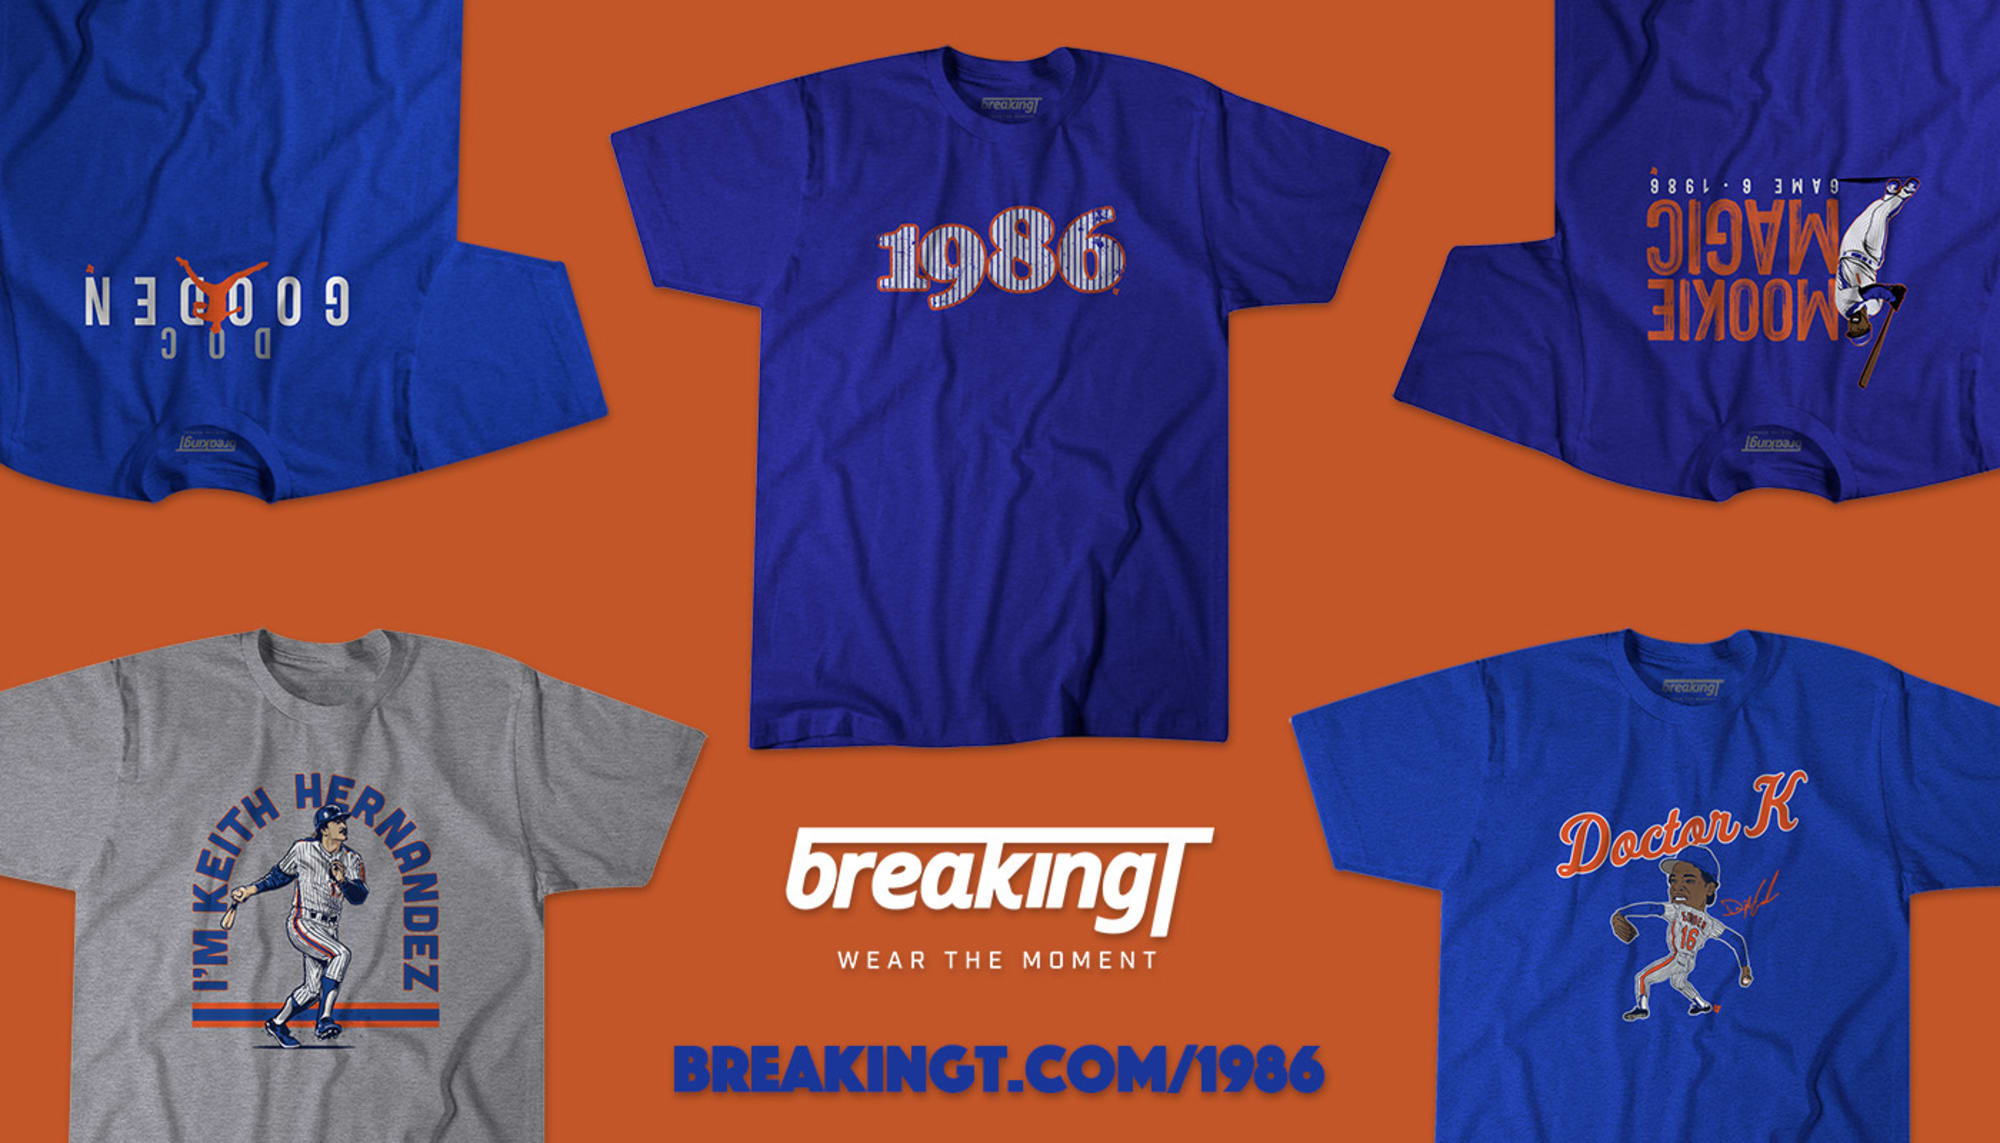 1986 collection.